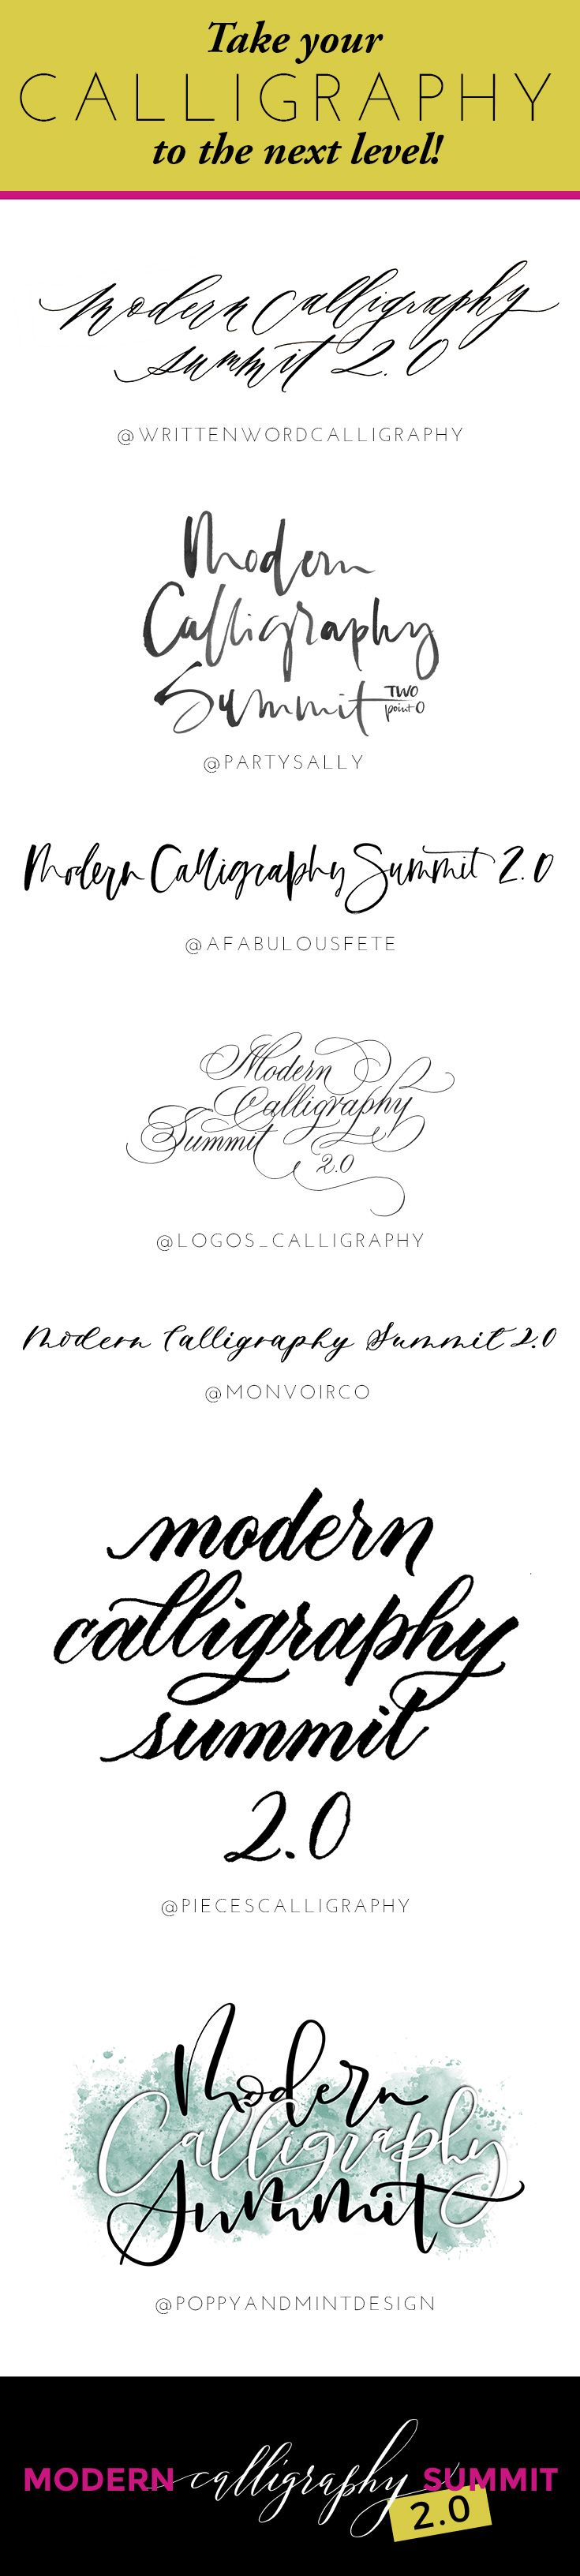 Modern calligraphy summit learn how to letter on